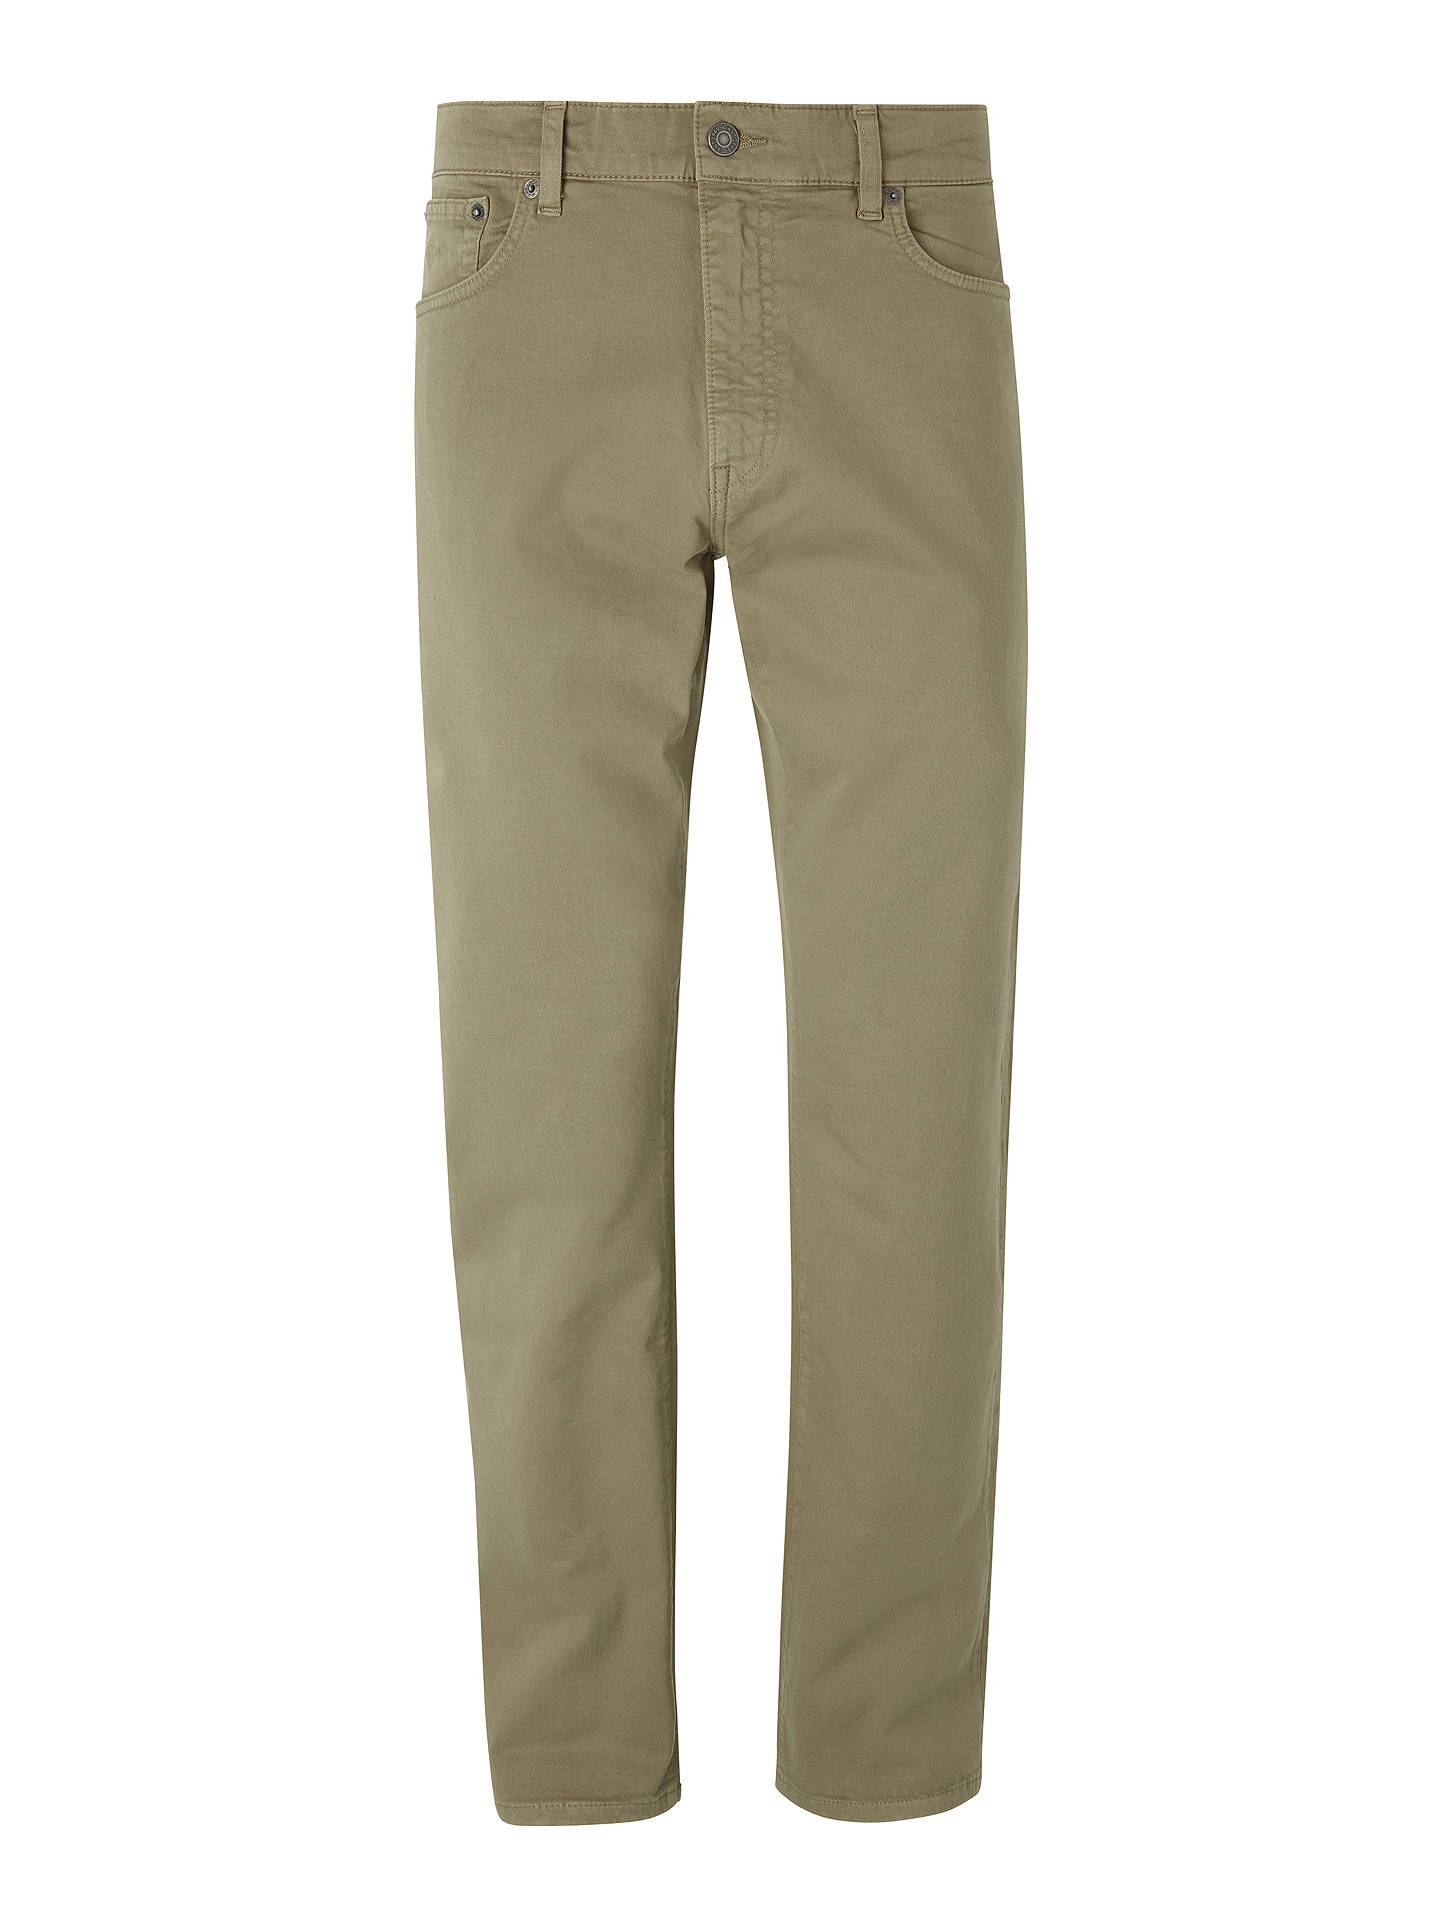 BuyGANT Regular Straight Fit Desert Twill Jeans, Brown, 30S Online at johnlewis.com